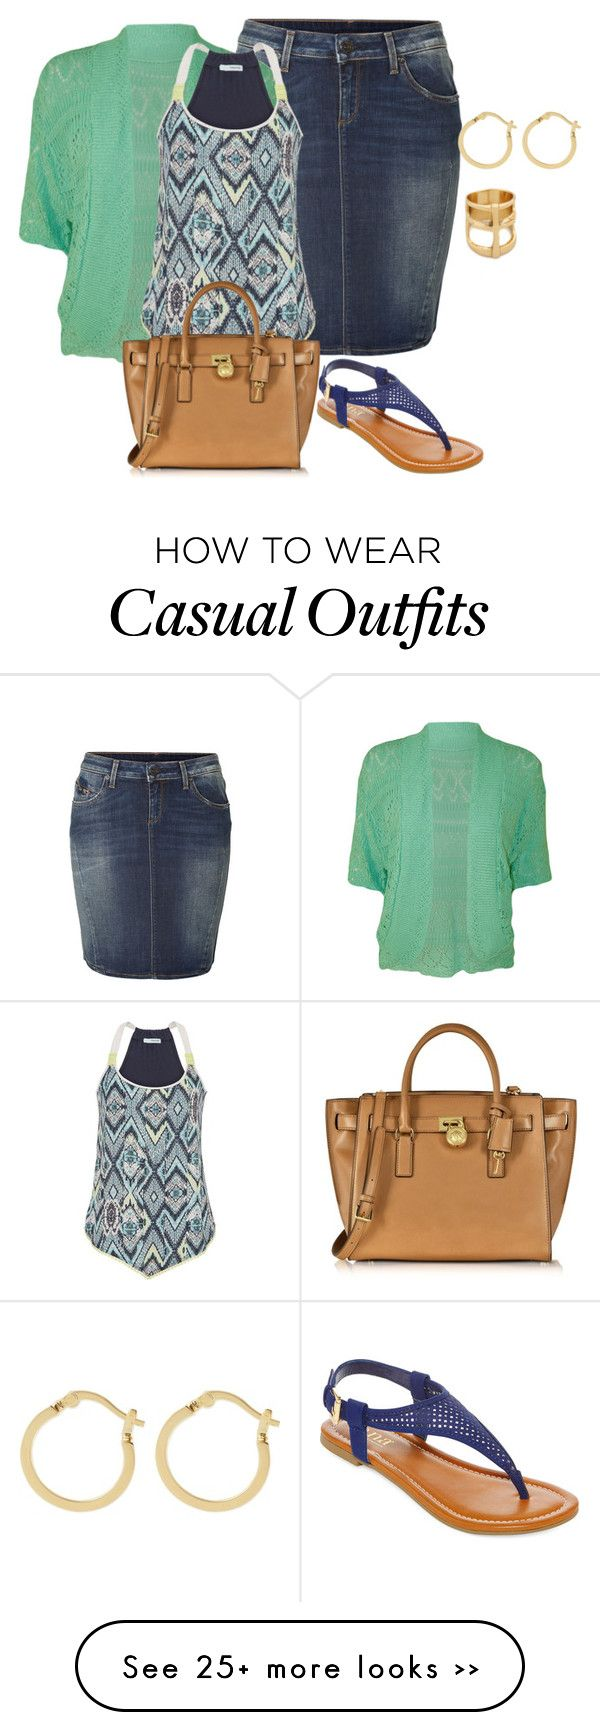 """""""my plus size denim skirt style look 1/casual office"""" by kristie-payne on Polyvore"""